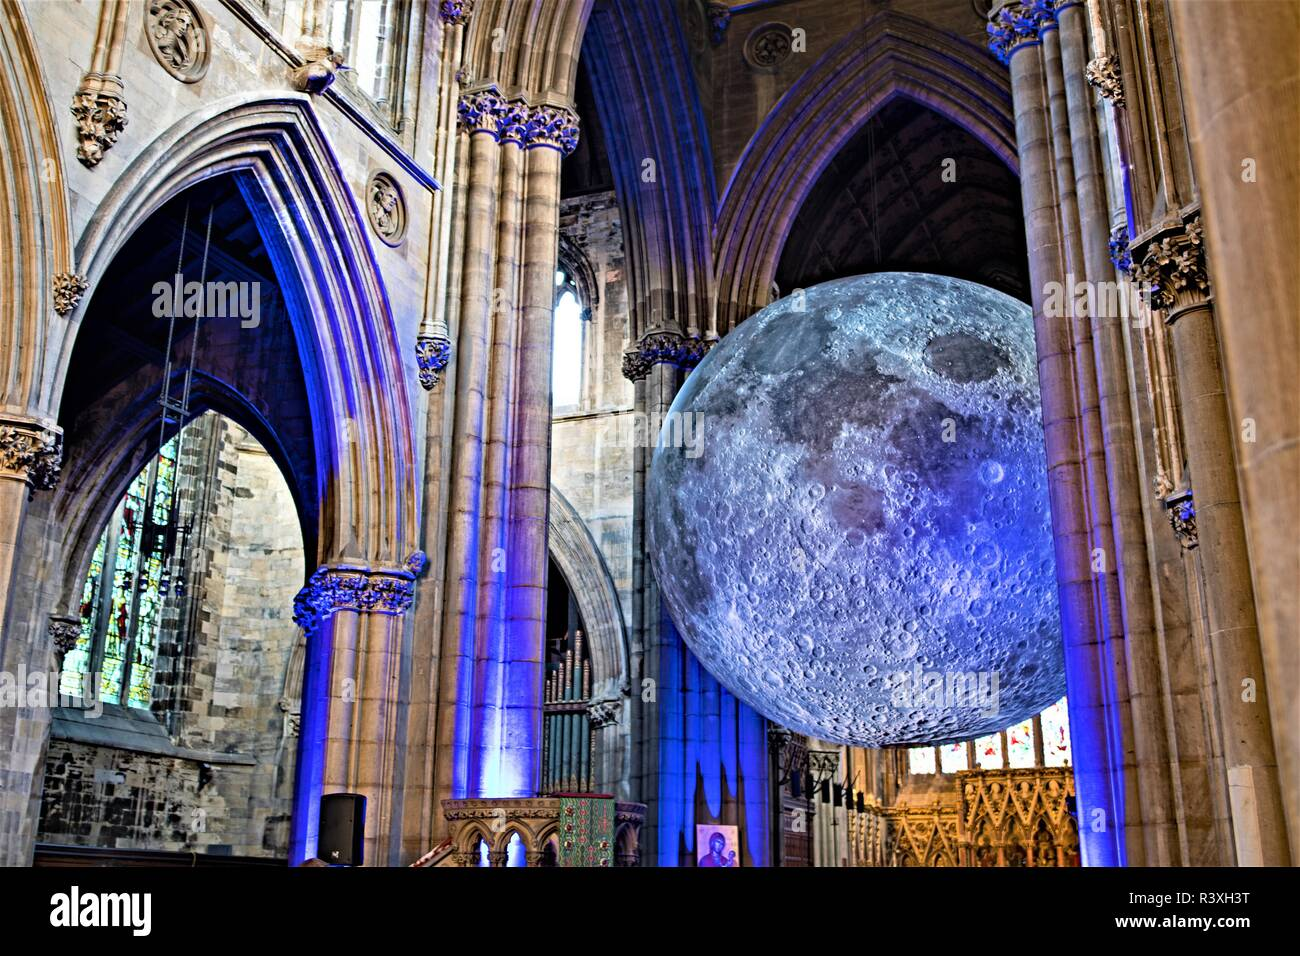 Museum of the Moon, in St George's Minster, Doncaster, South Yorkshire. - Stock Image